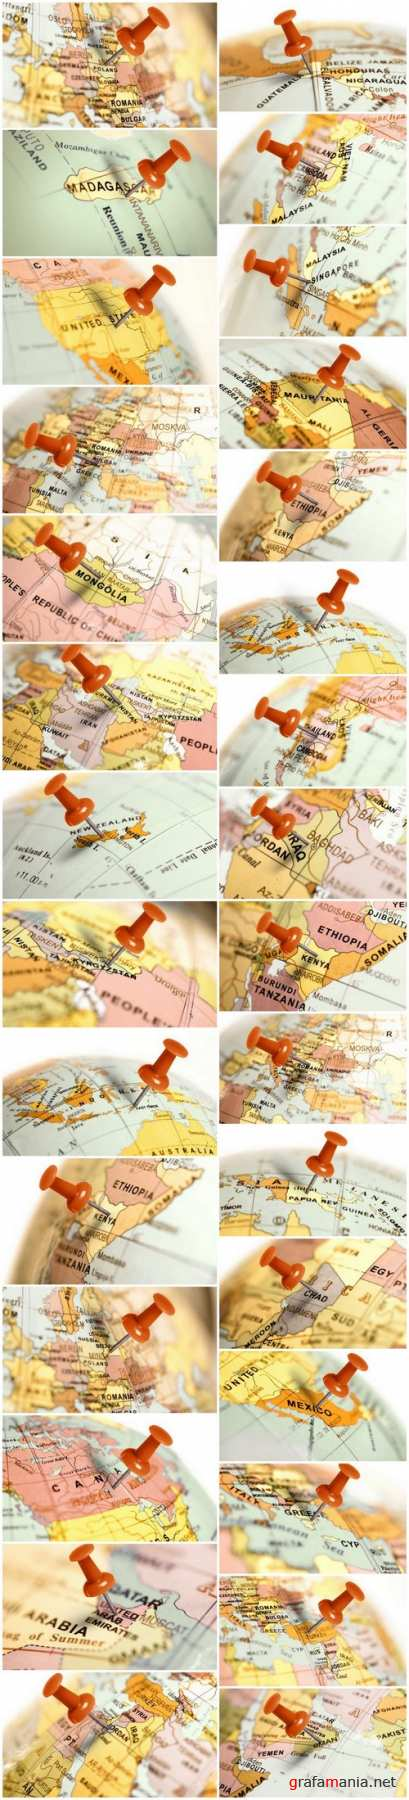 Location & red pin on the map - 30xUHQ JPEG Photo Stock